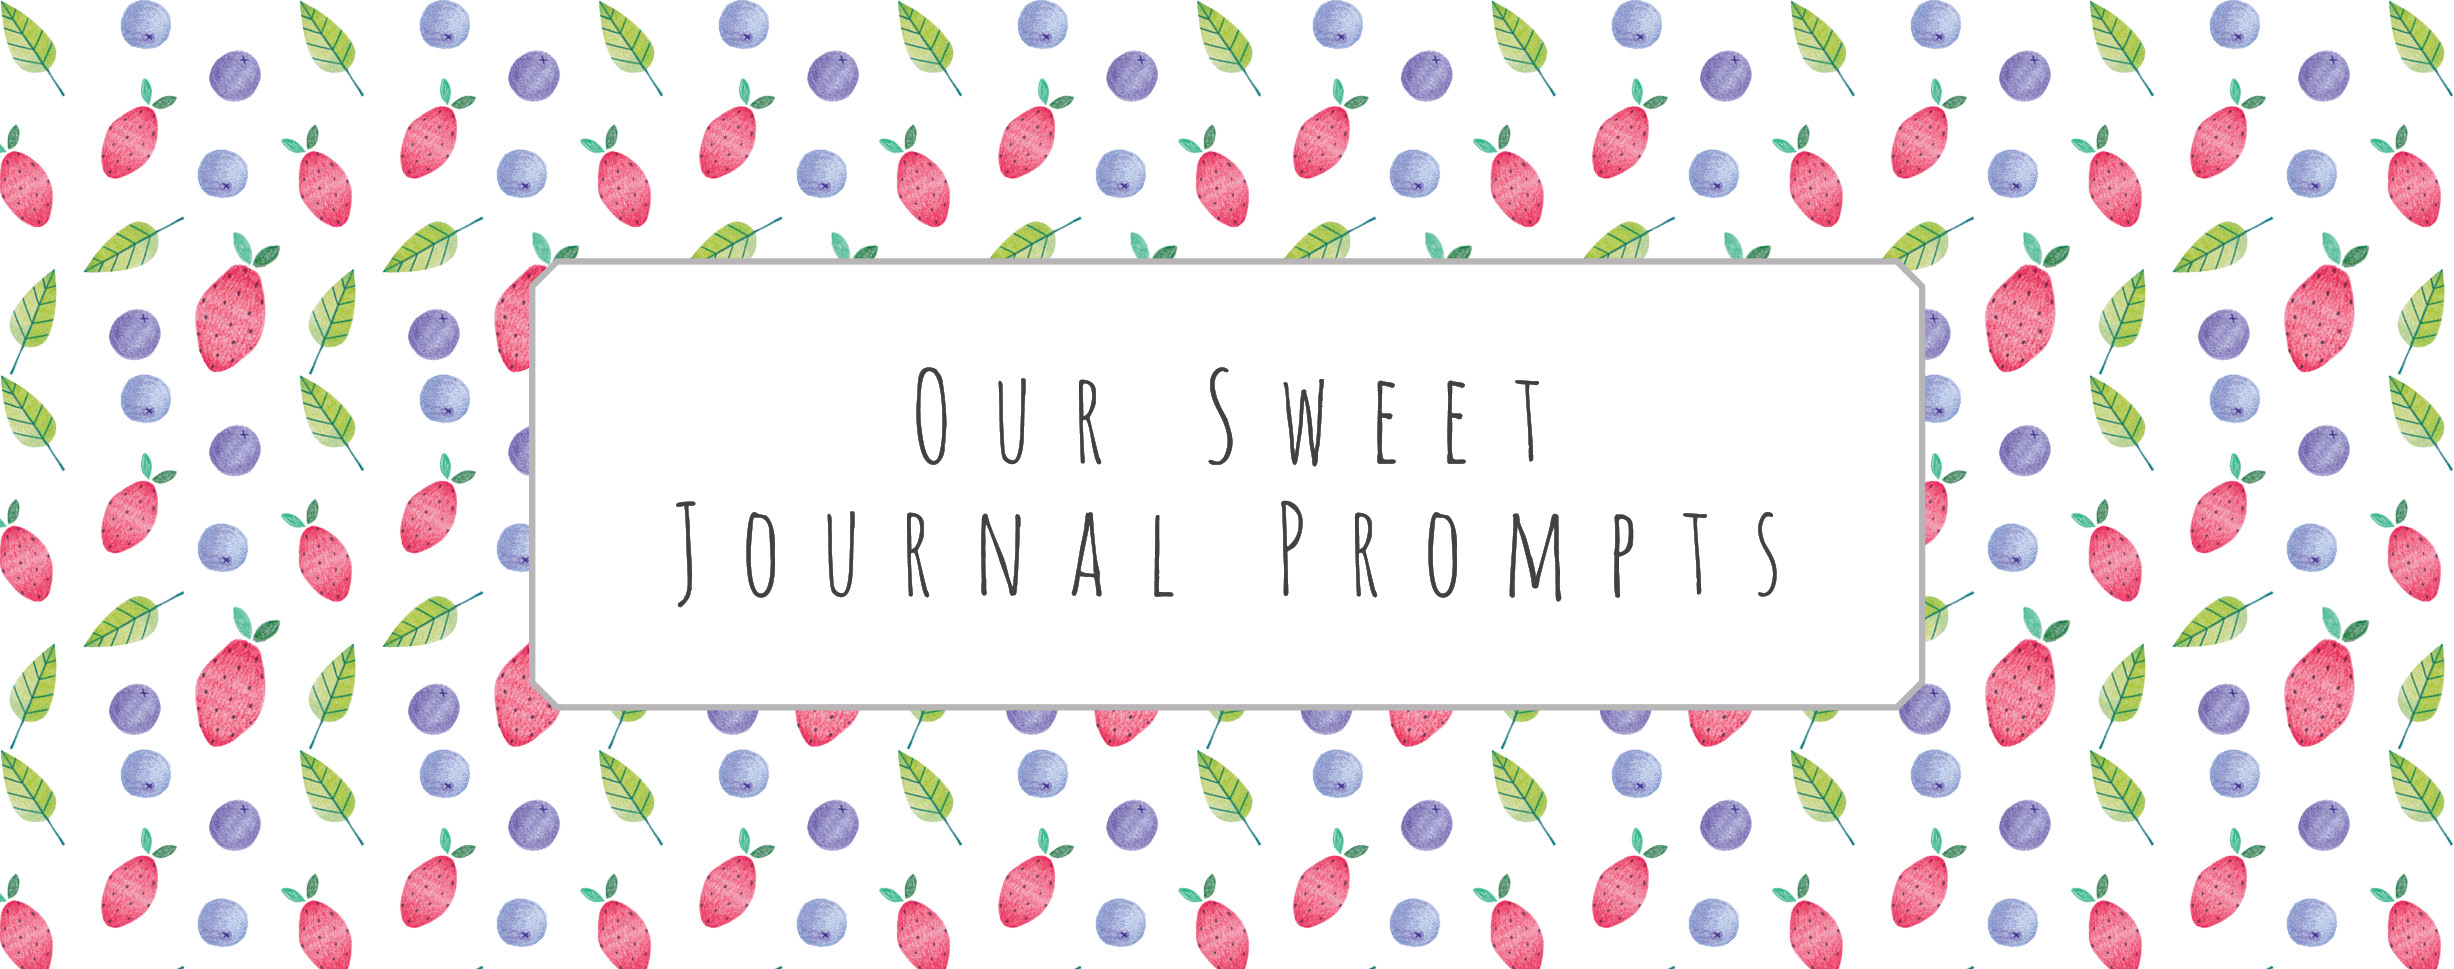 Discover our sweet journal prompts